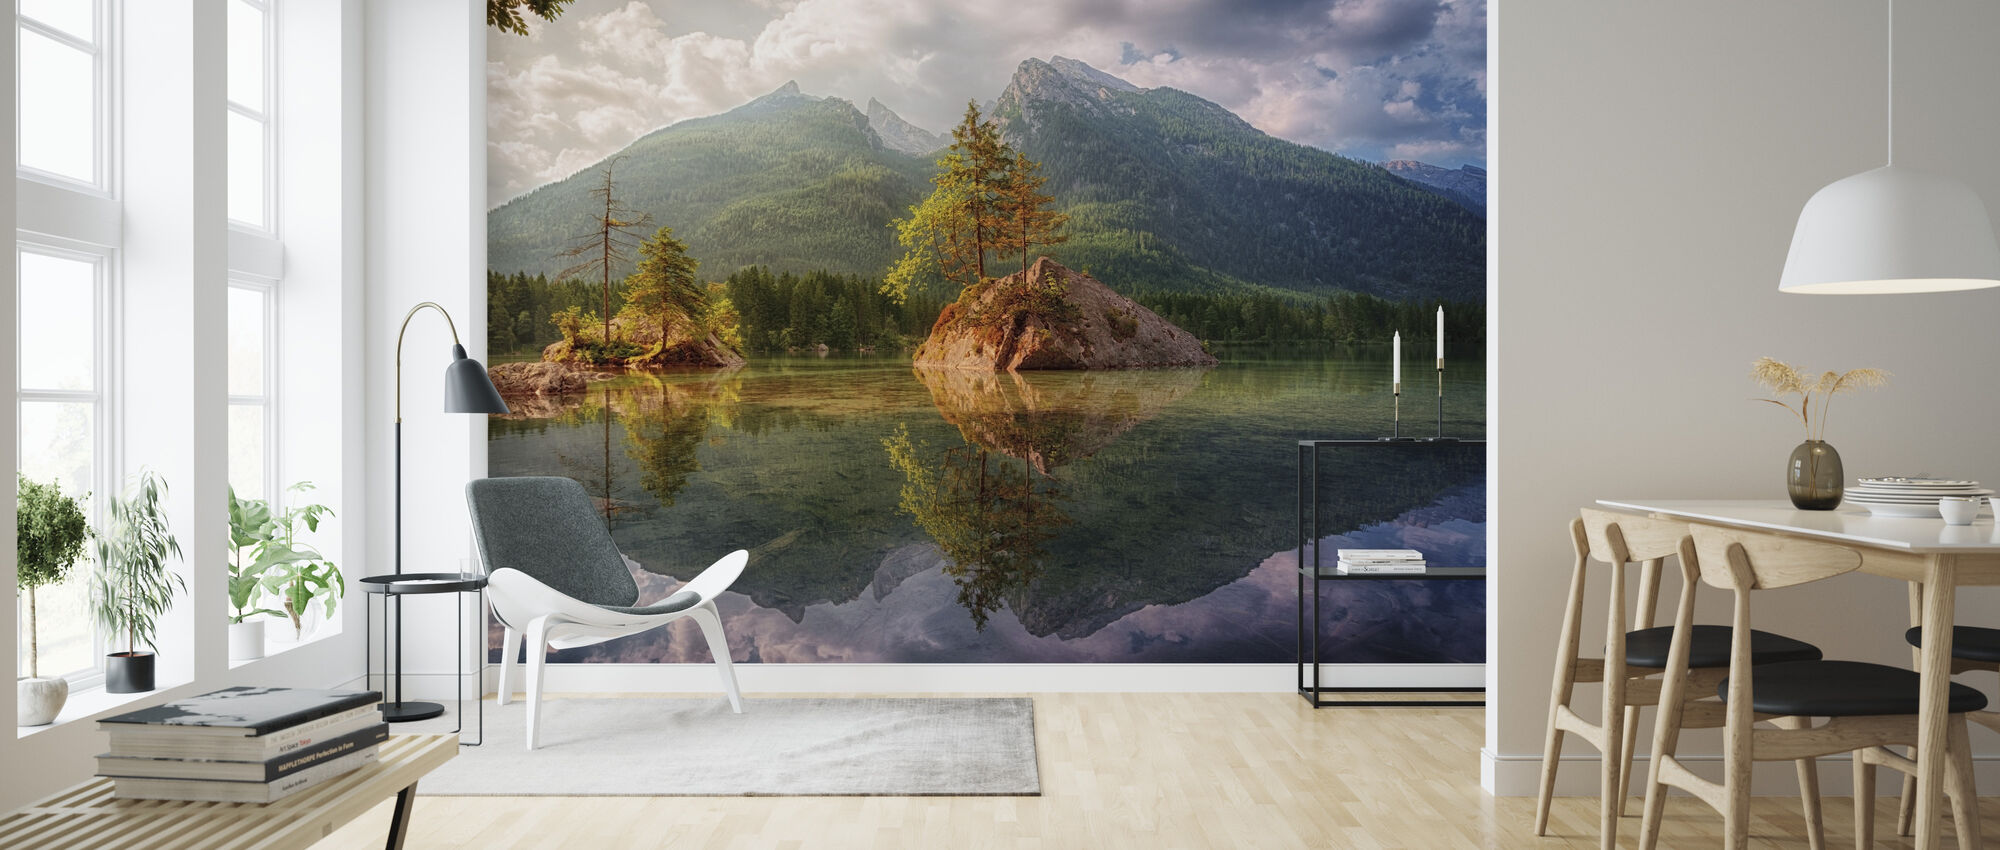 Lake and Mountain Reflection - Wallpaper - Living Room